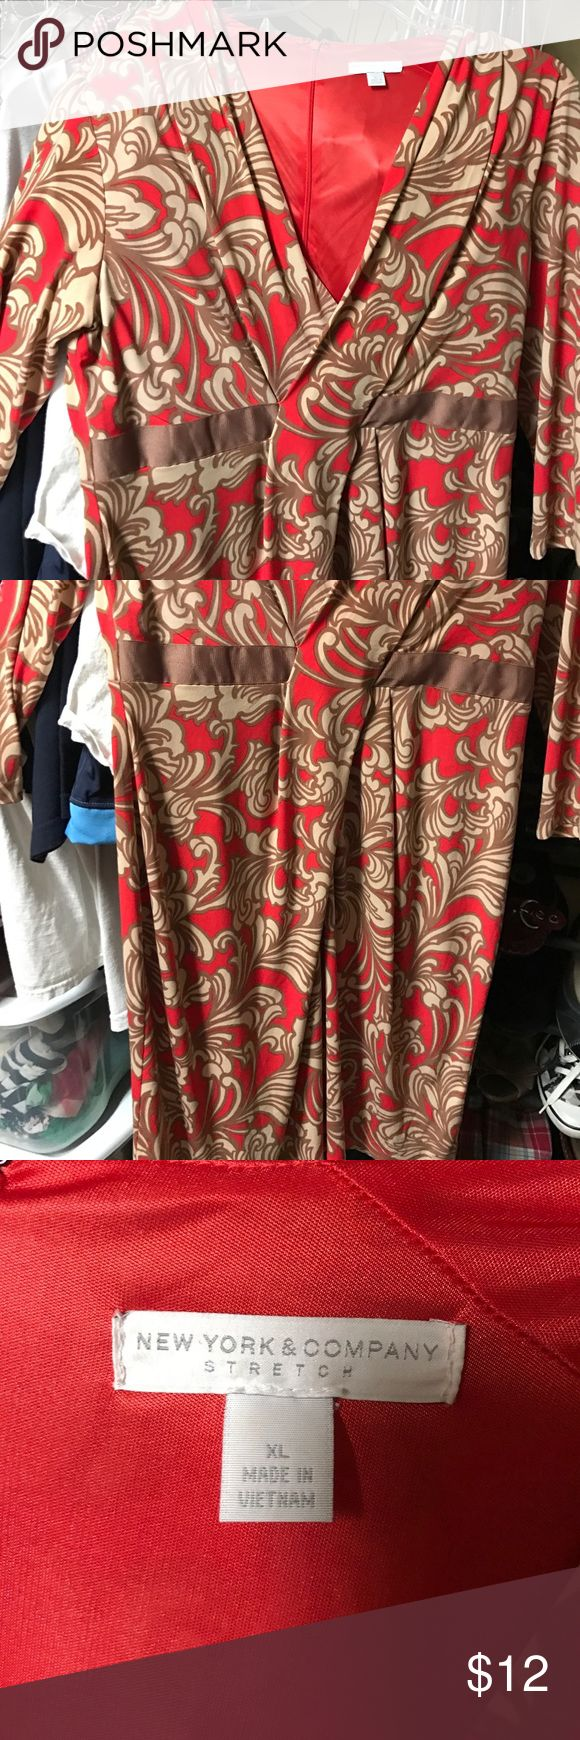 Nice dress New York and company extra large dress. Cream and dark orange or terra-cotta in color. Worn once or twice. Going for a low price. Must go! Cleaning out closet! Smoke and pet free home! Get it before someone snatches it up New York & Company Dresses